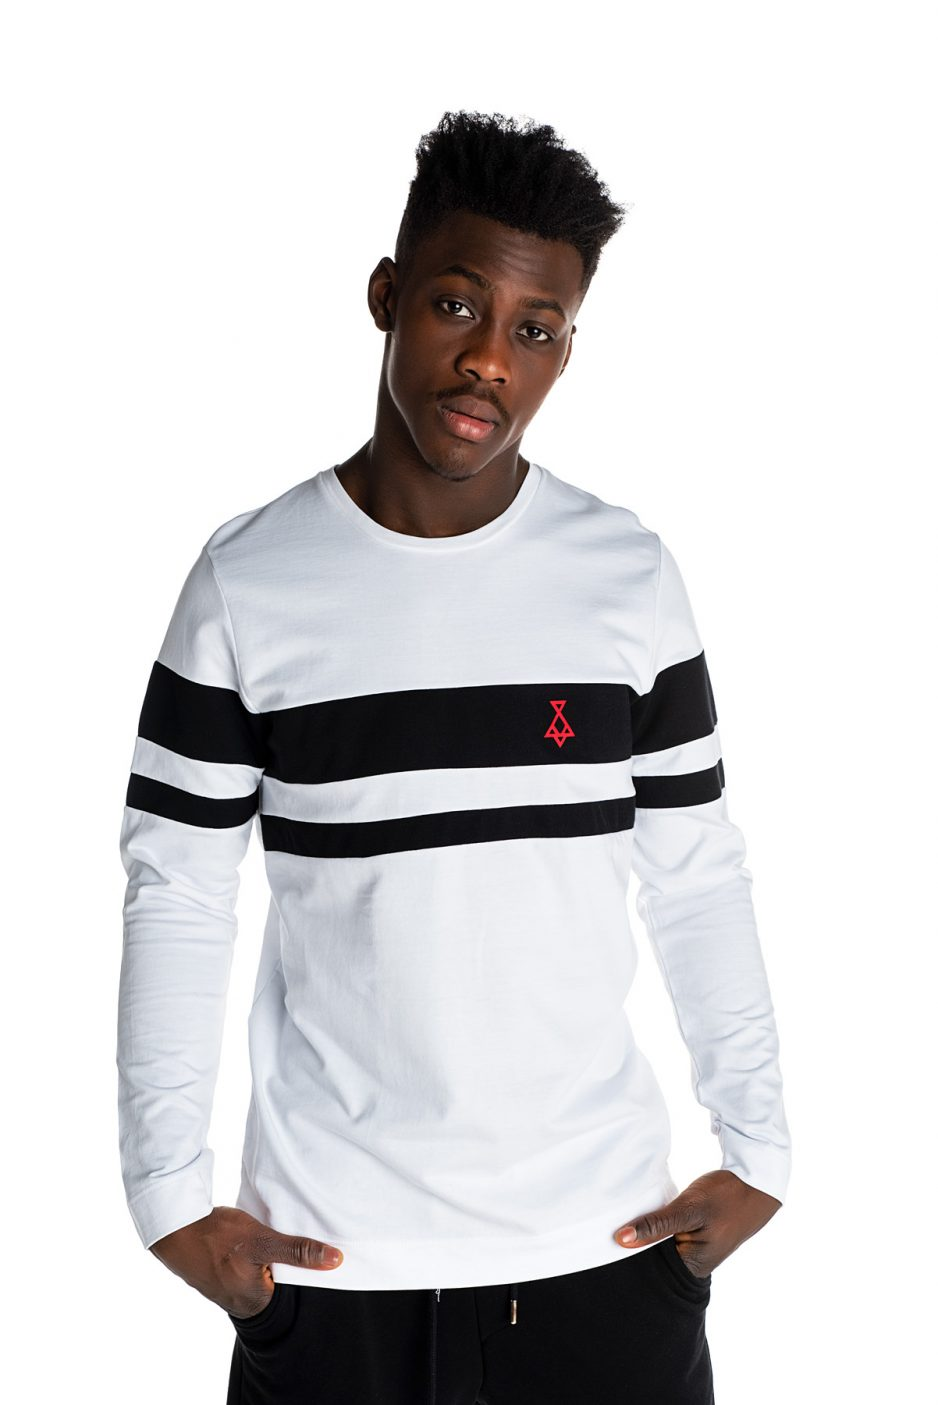 White blouse with red P/COC logo in front